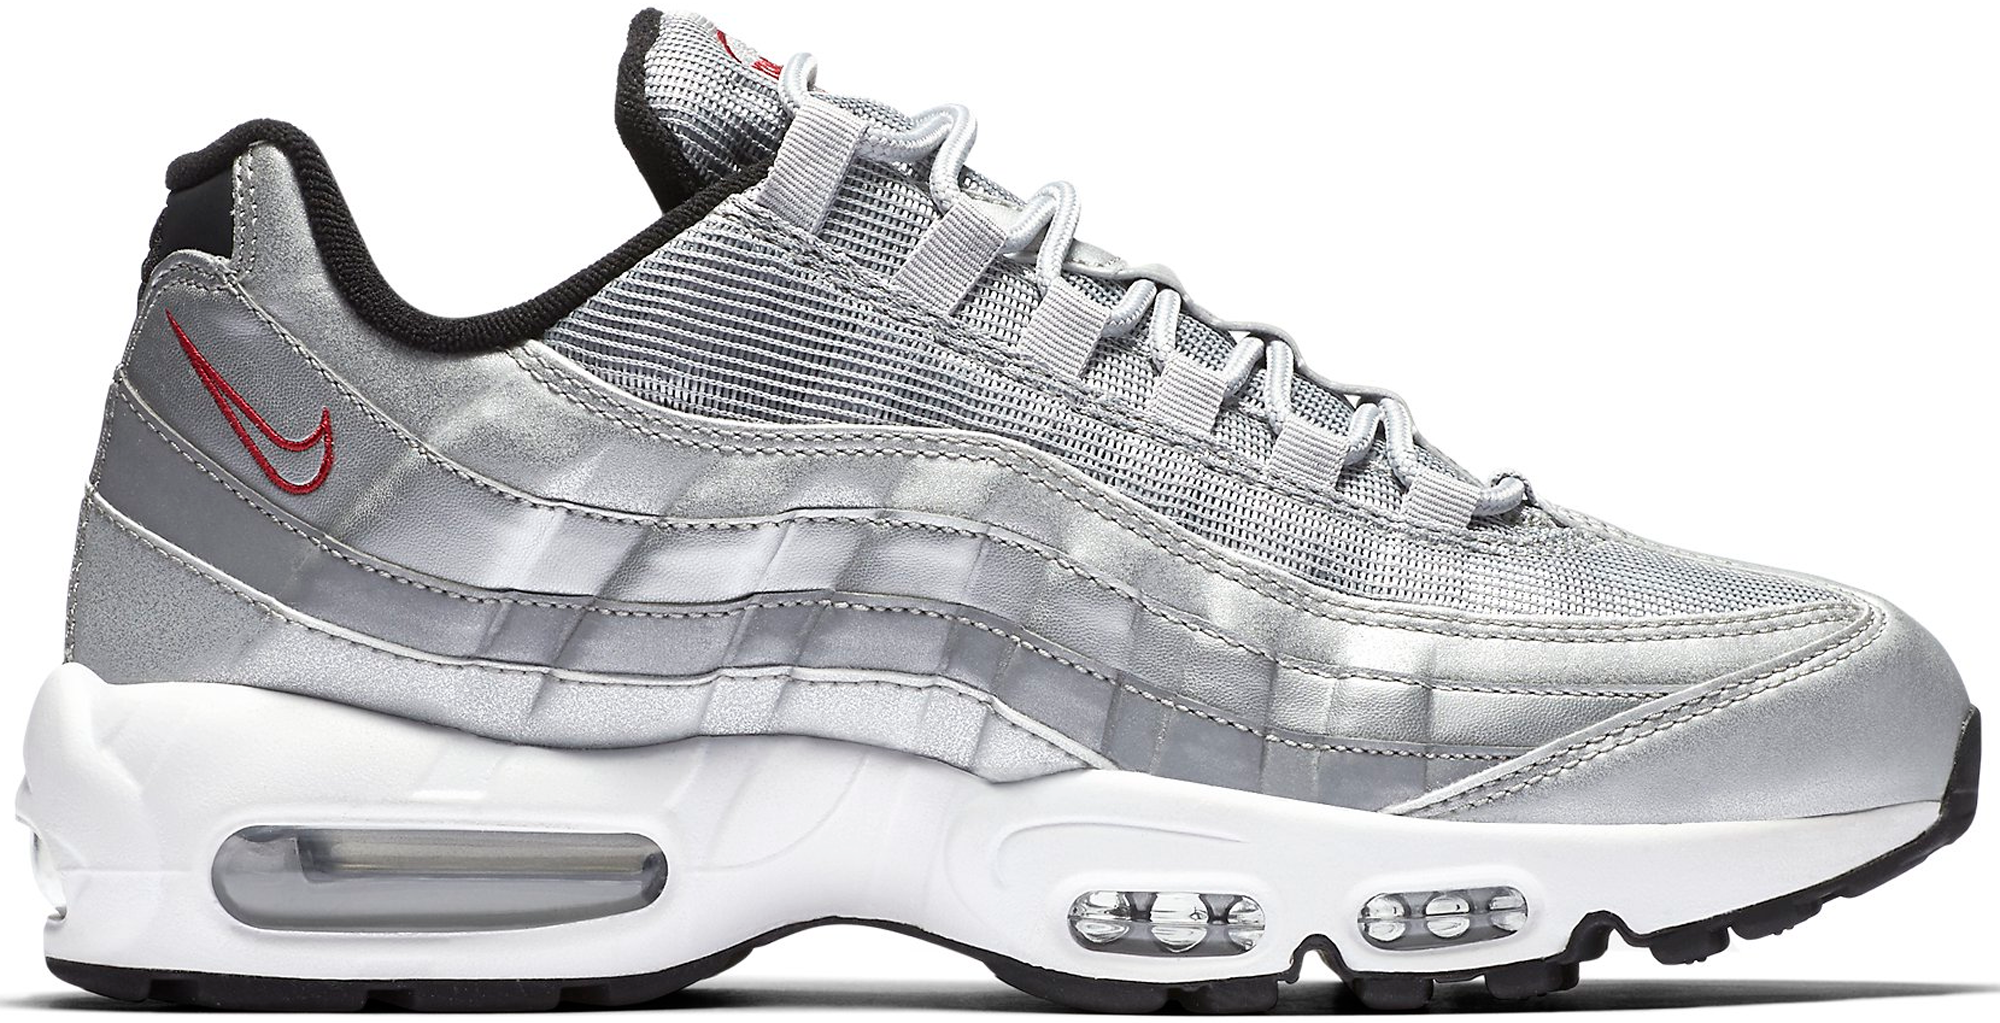 3c3f44d05f coupon code for air max 95 silver edition 1554d 5f0d4